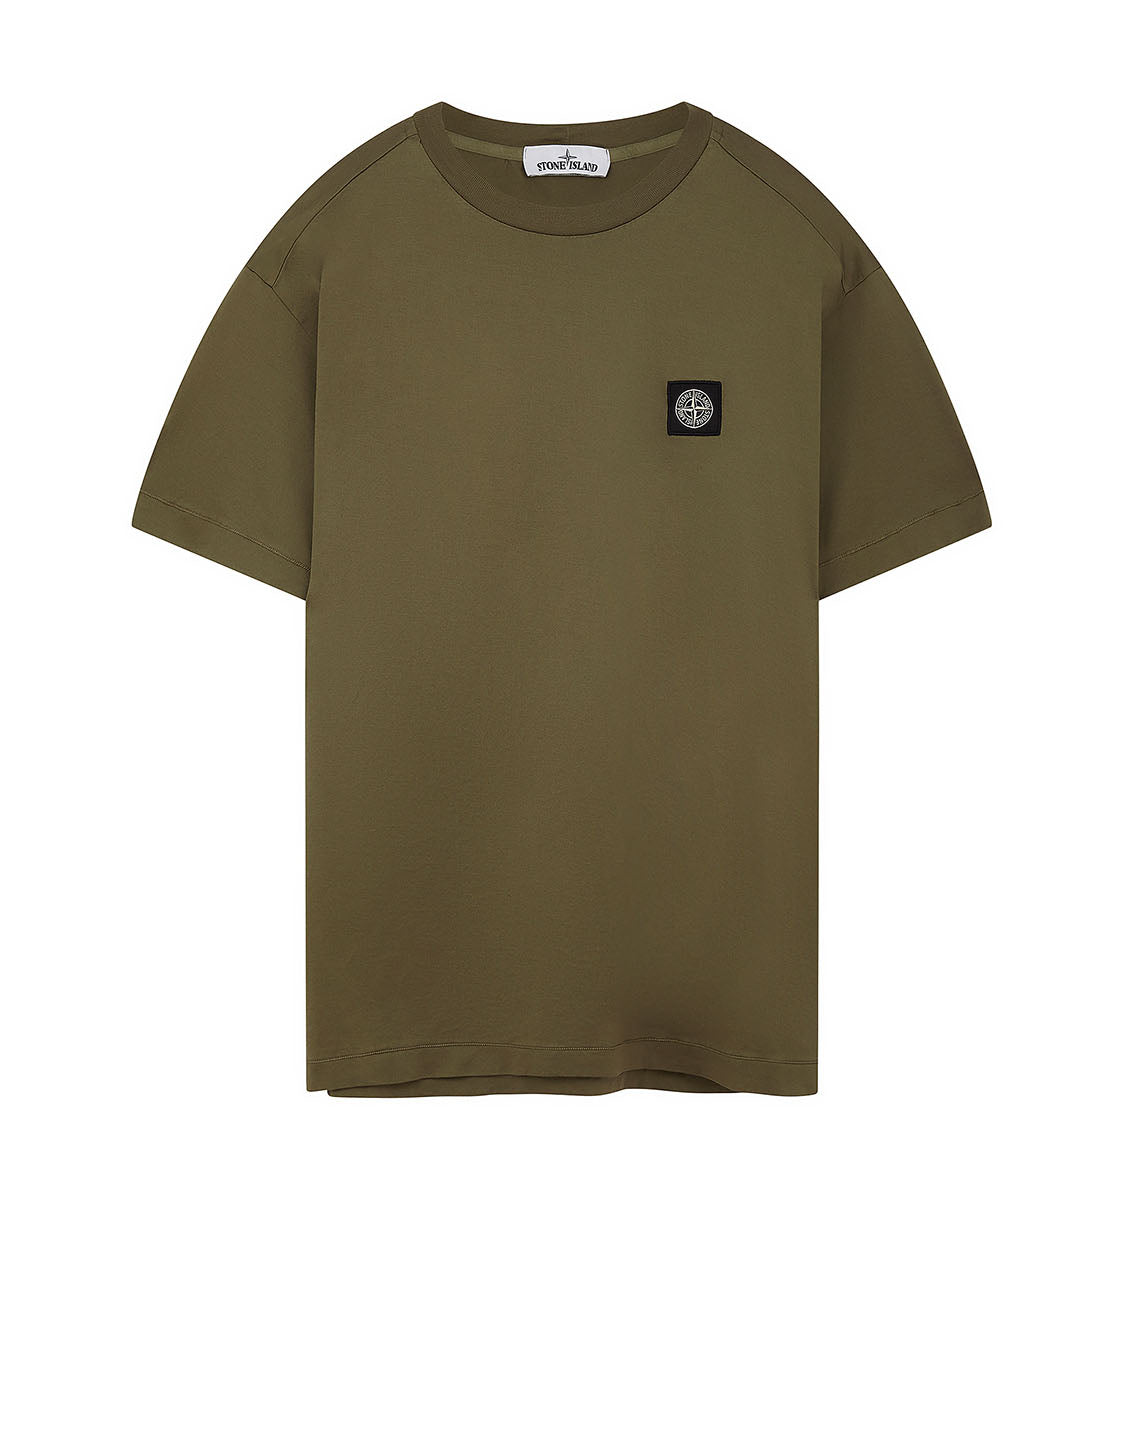 24113 T-Shirt in Olive